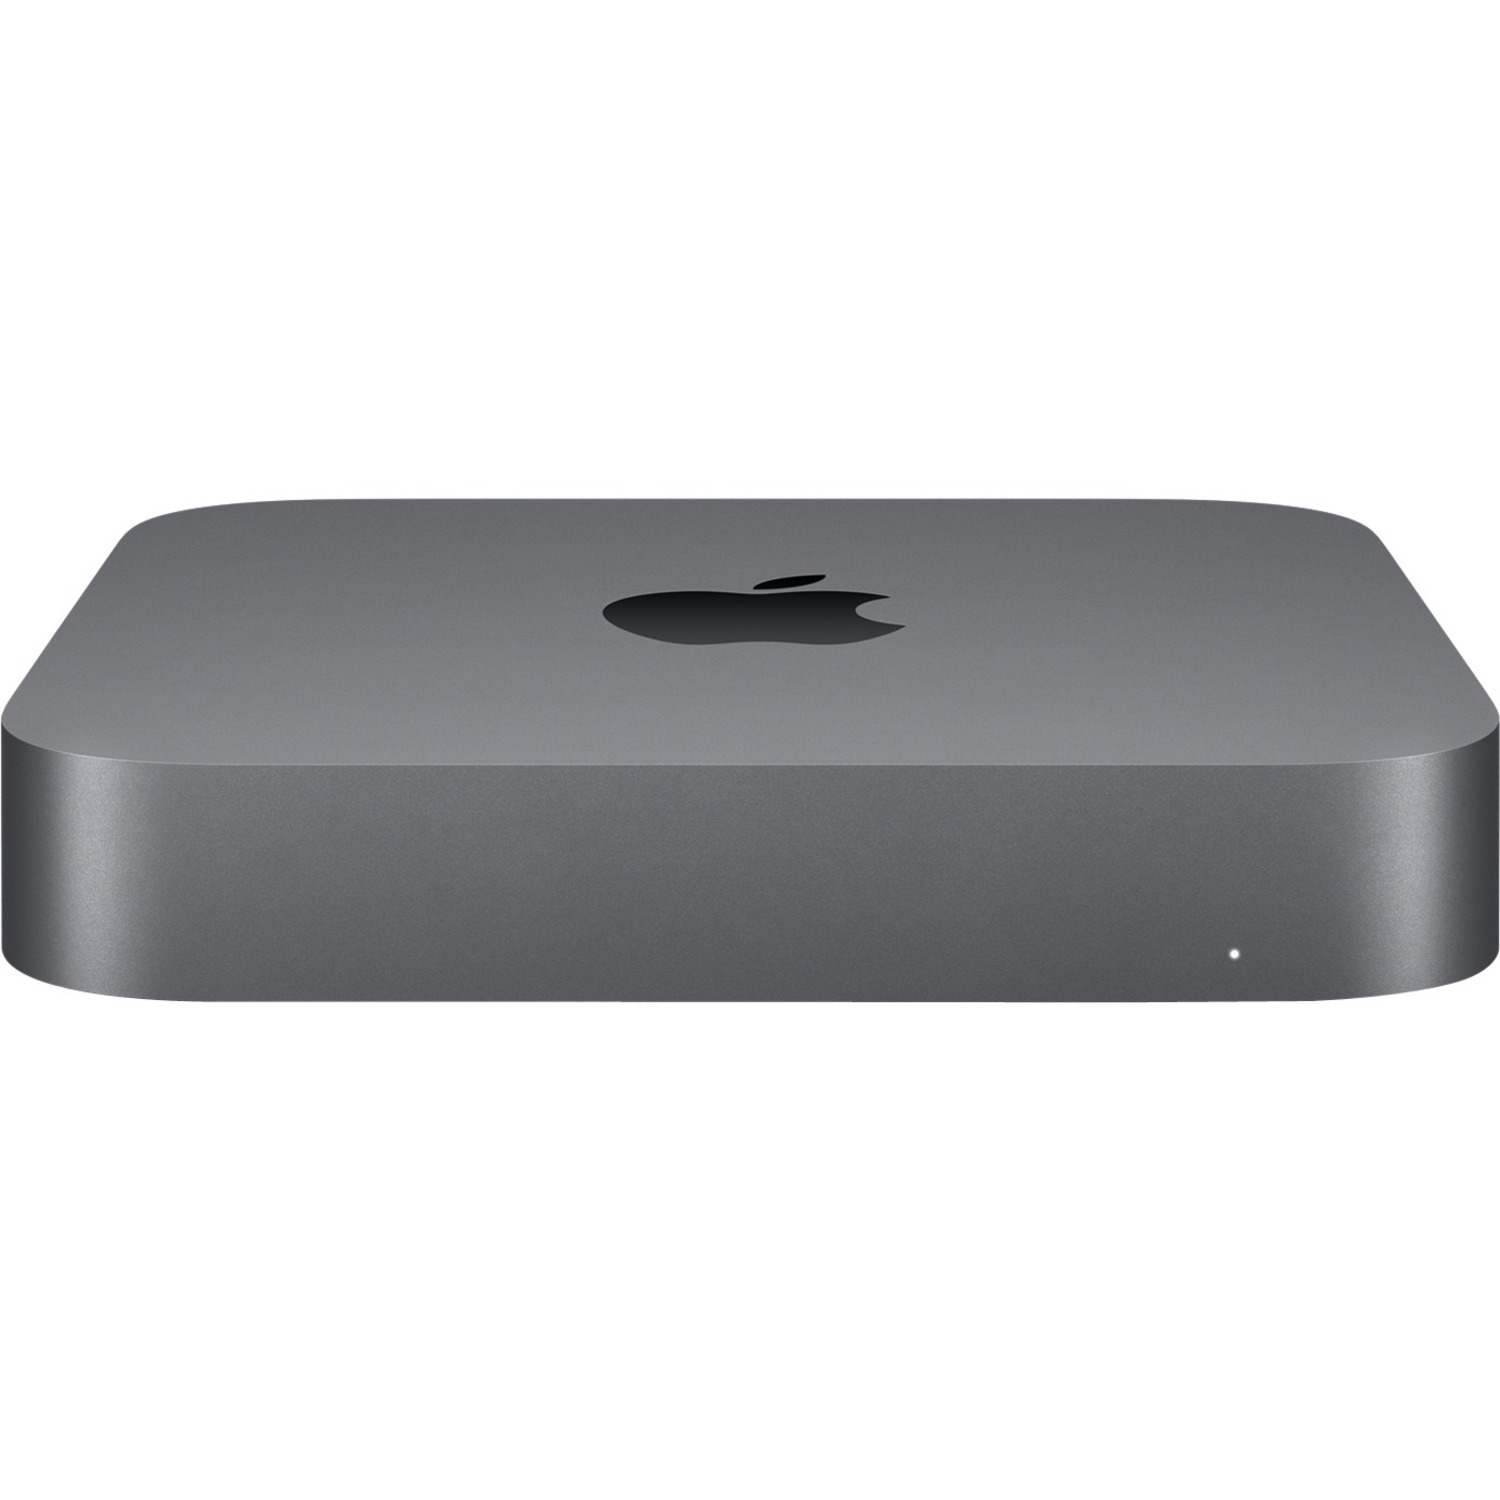 Apple Mac mini MRTR2LL/A Desktop Computer - Intel Core i3 (8th Gen) 3 60  GHz - 8 GB DDR4 SDRAM - 128 GB SSD - macOS Mojave - Mini PC - Space Gray -